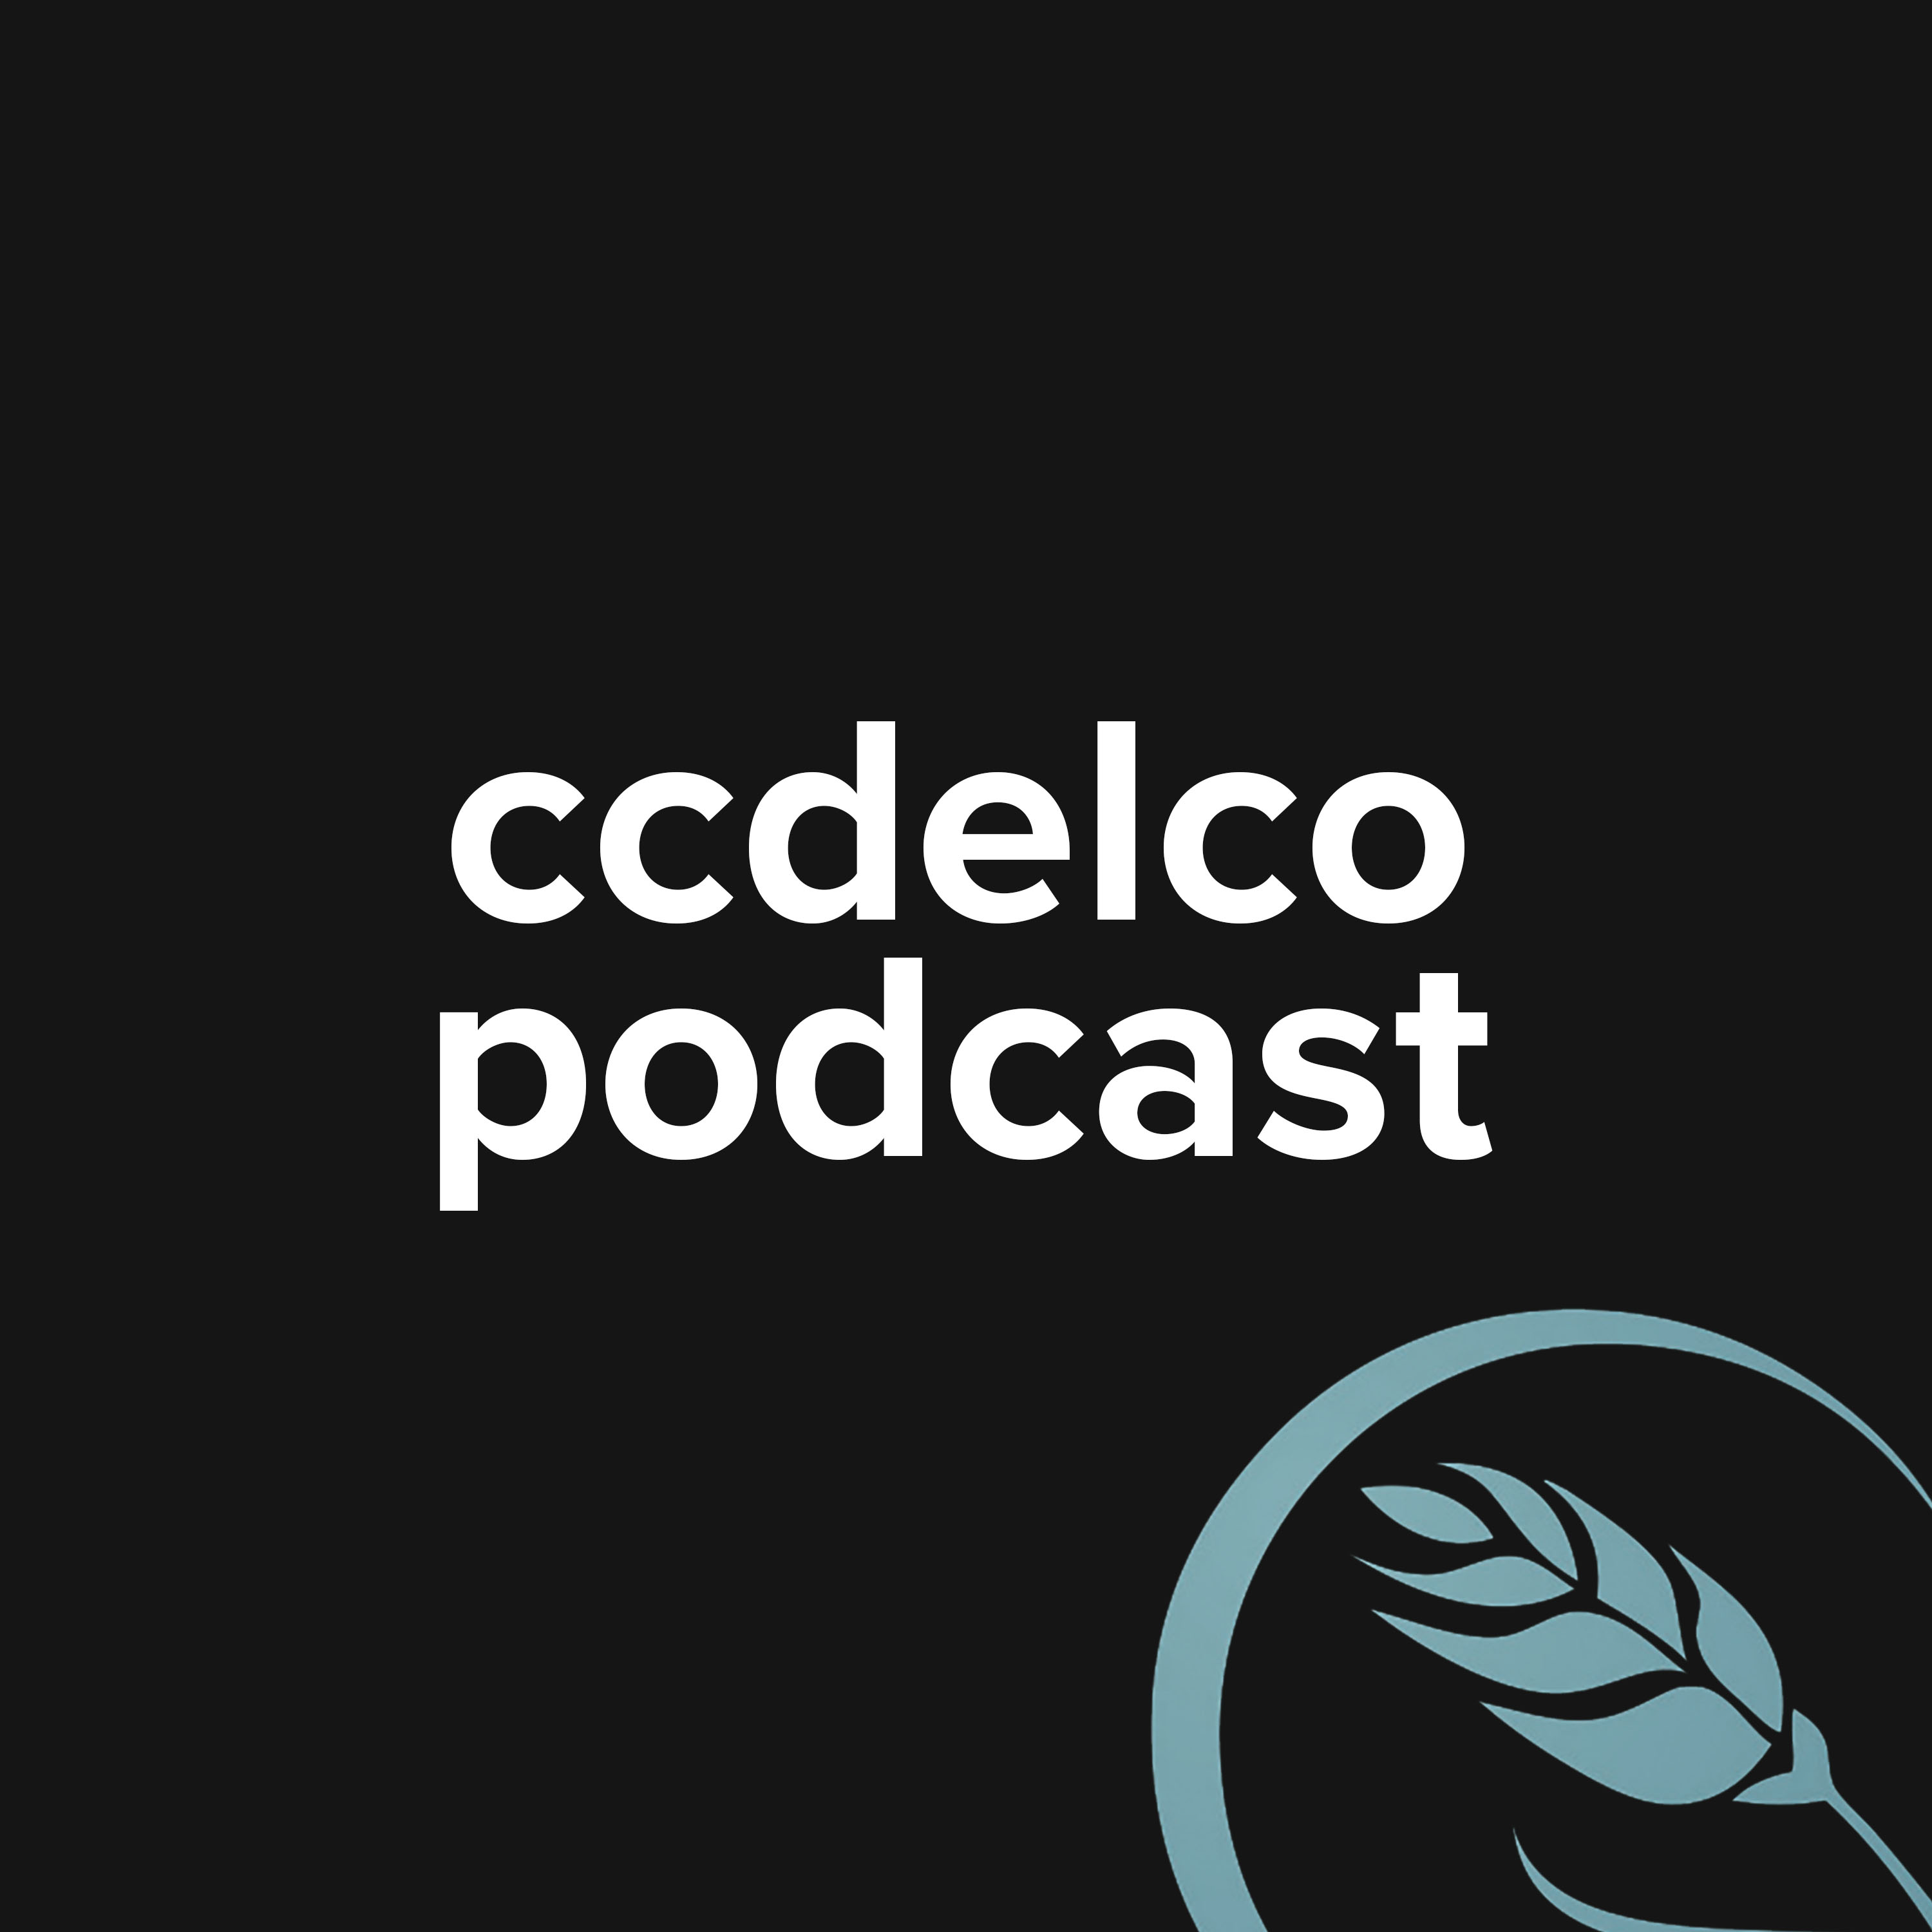 A profile picture of the ccdelco podcast platform.